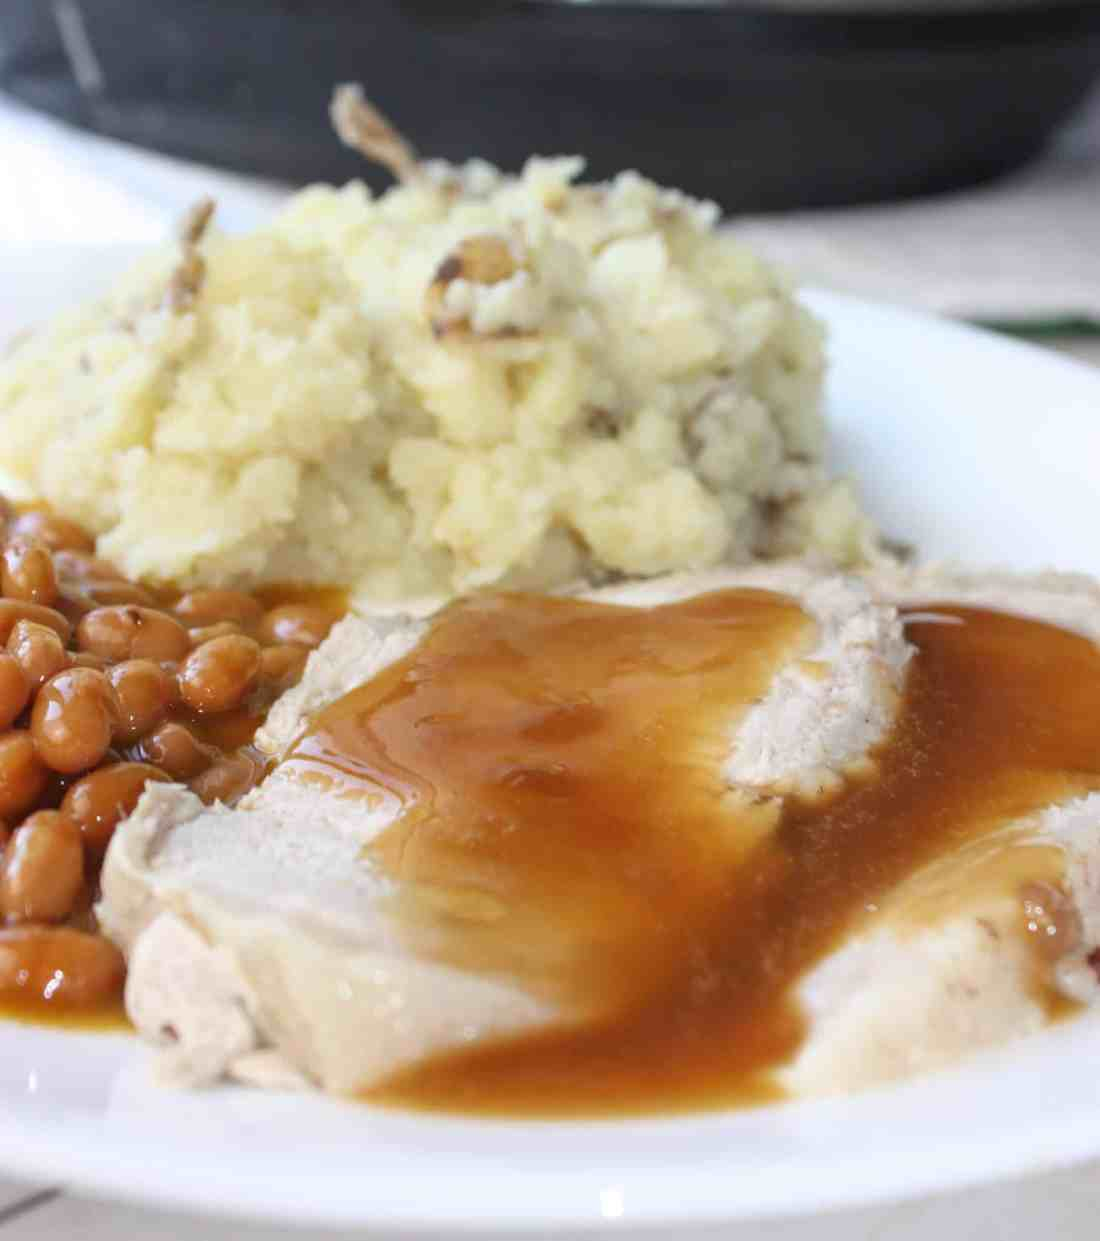 Instant Pot Pork Loin Roast with Garlic Mashed Potatoes is another easy pressure cooker recipe. This roast, flavoured with fall spices, turned out so moist and delicious.